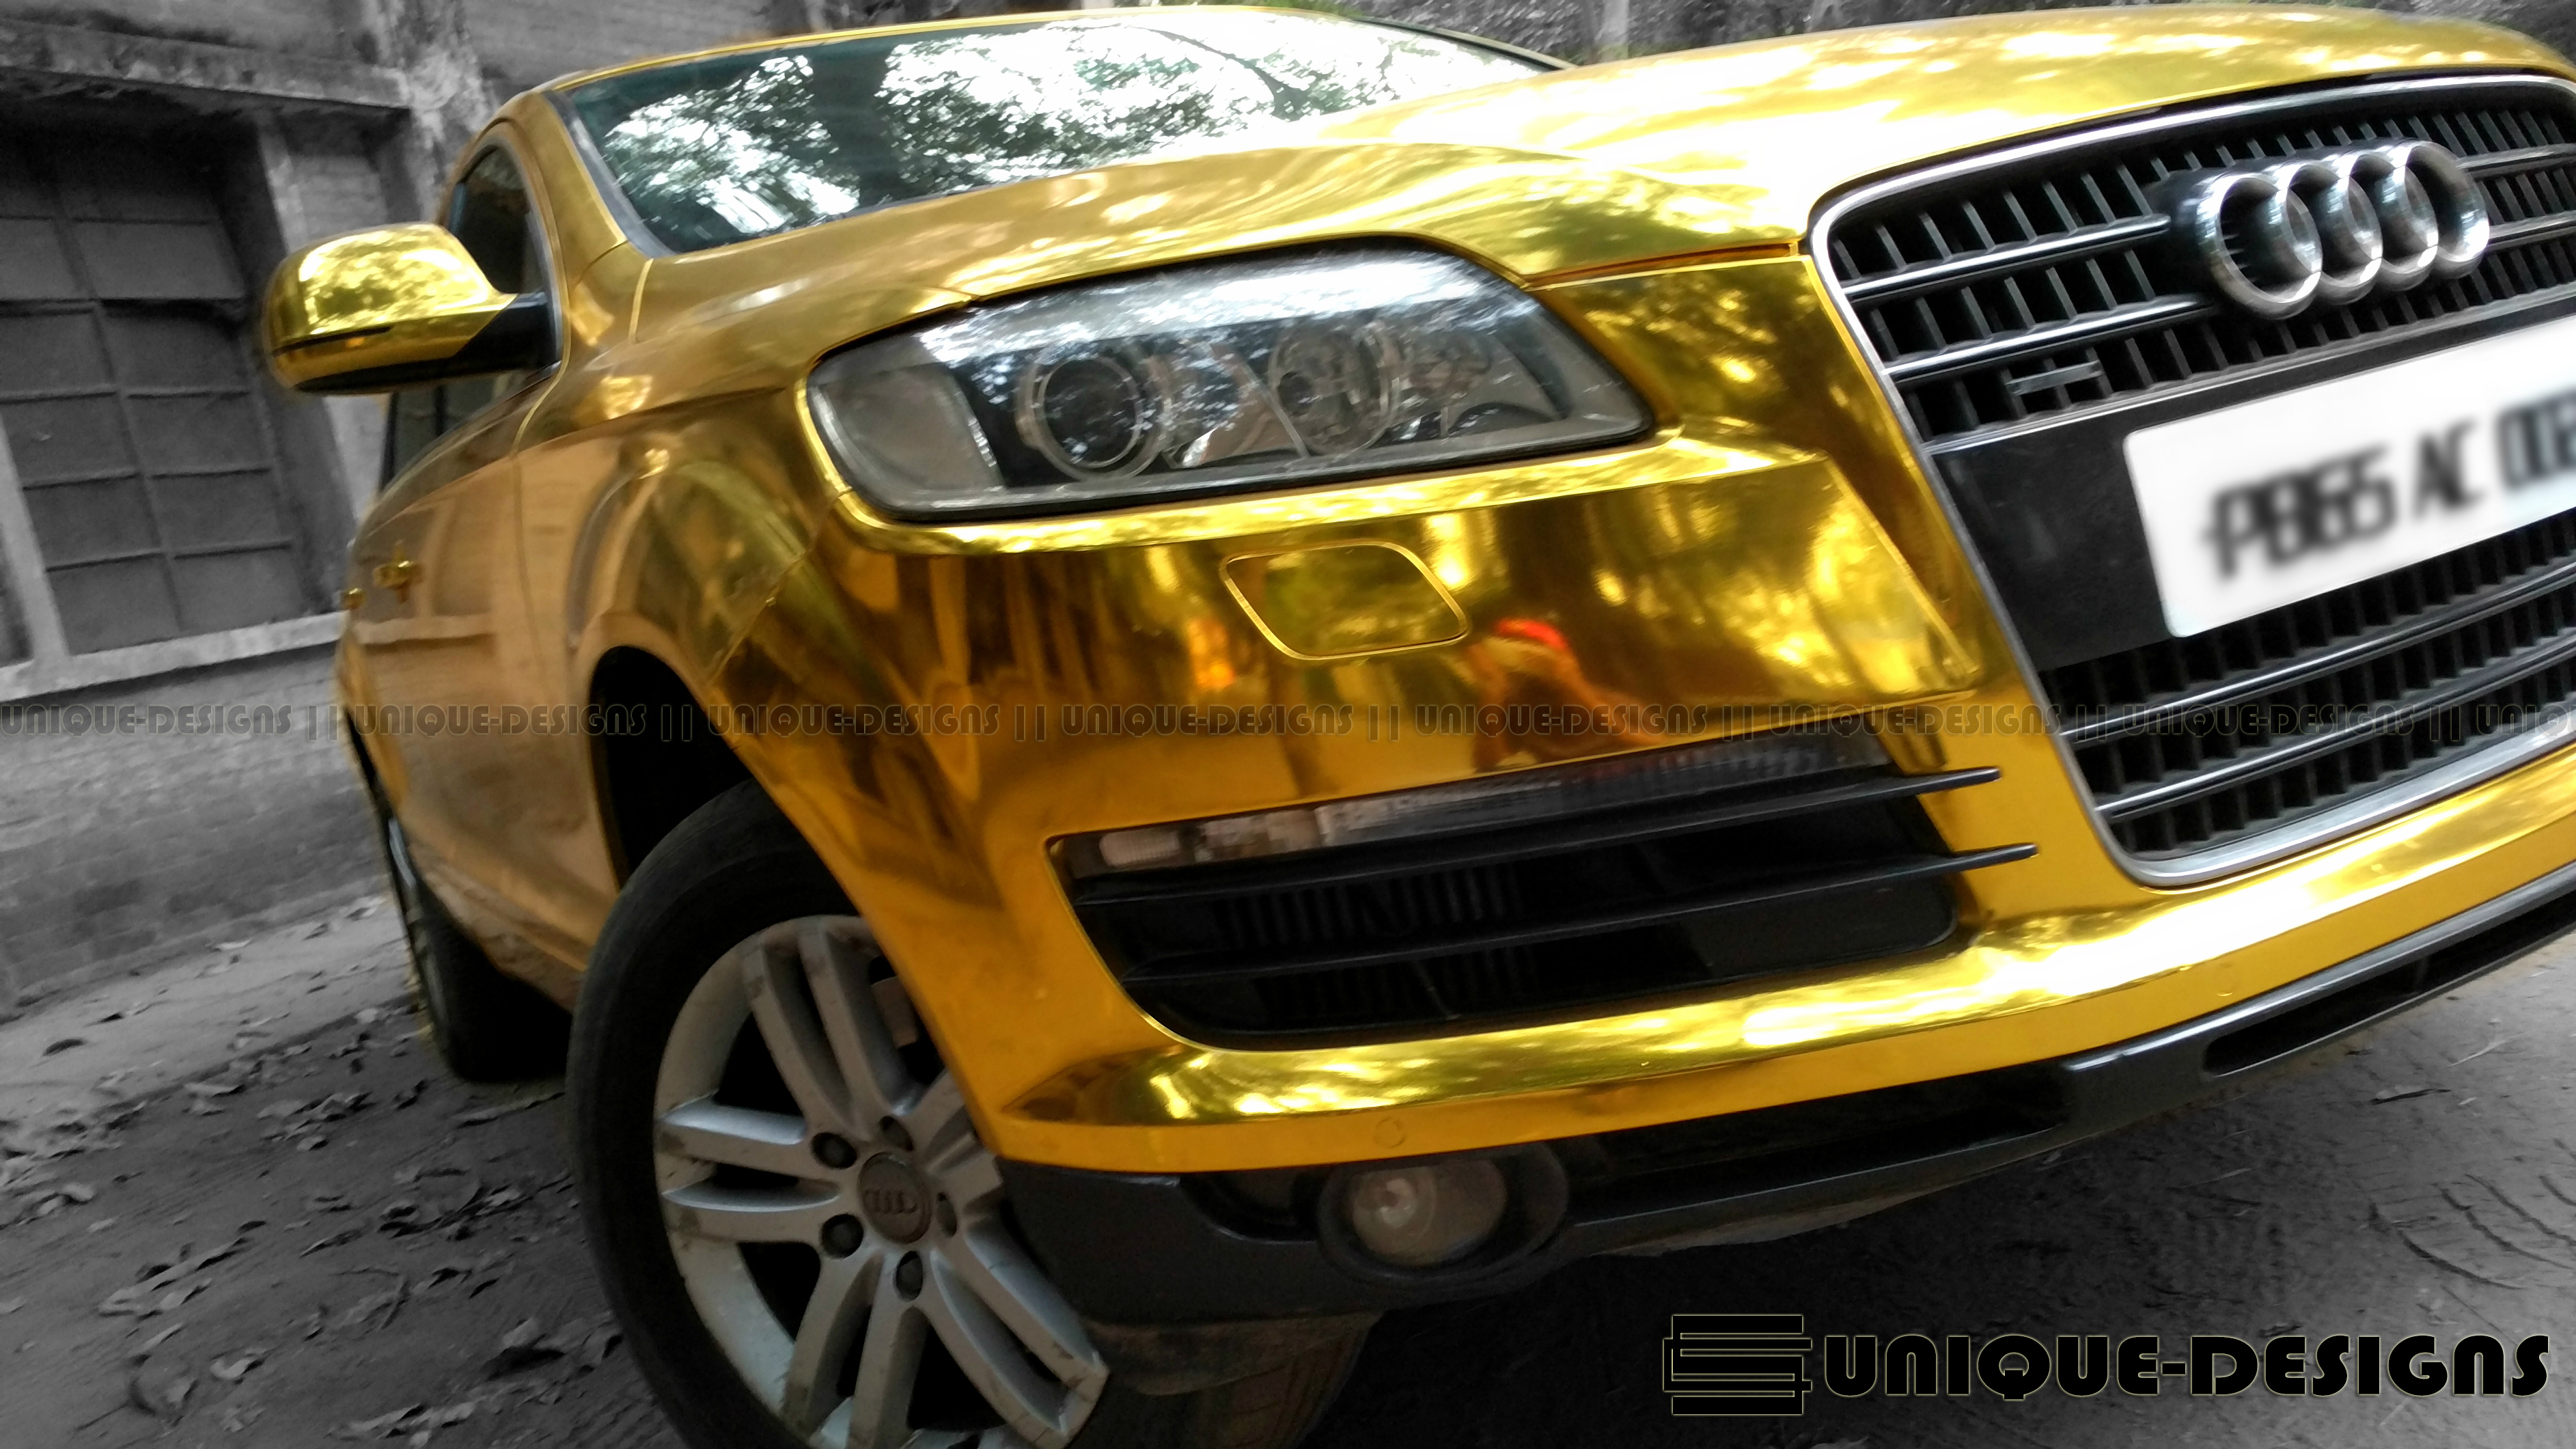 Gold Chrome Audi Q7 Wrap Wrapfolio